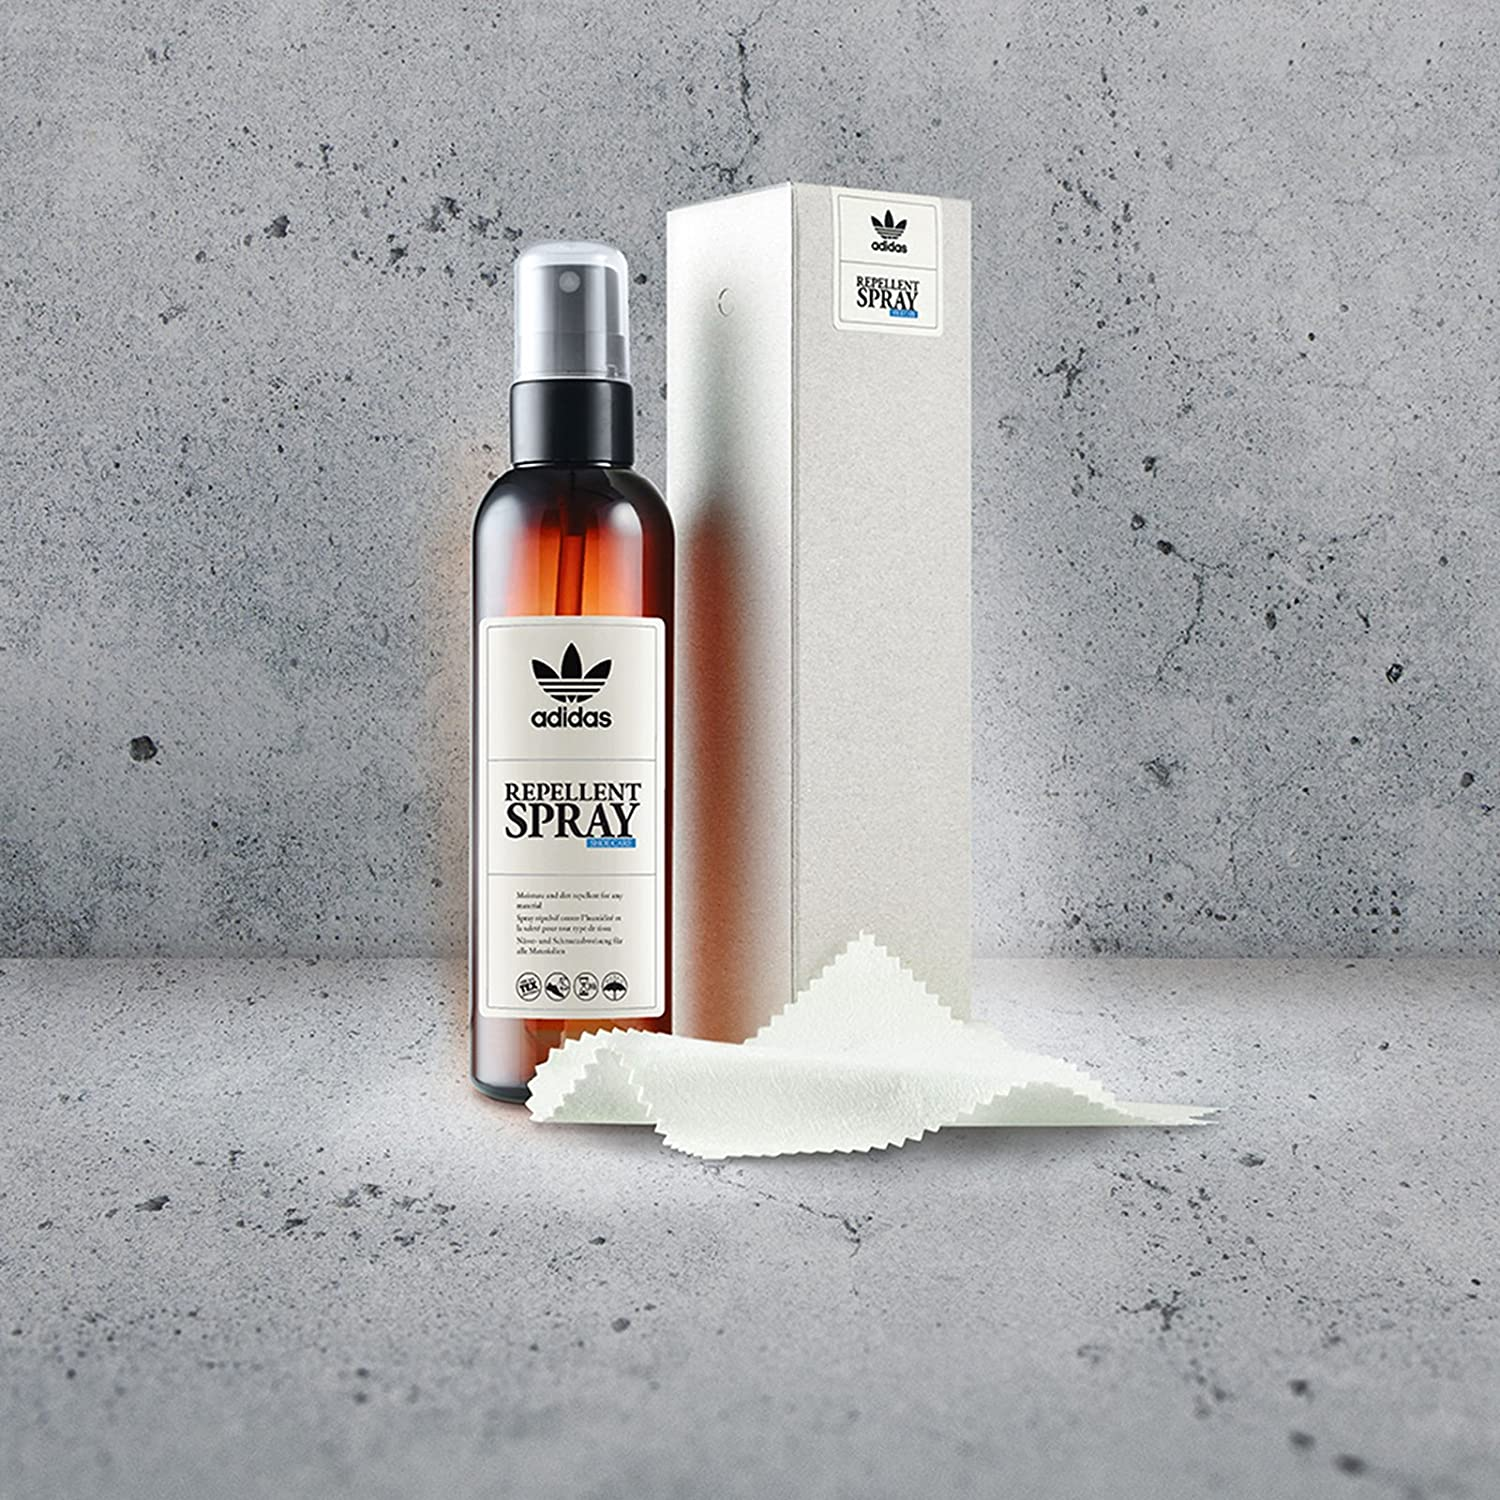 Adidas Spray Set Repellent Ado Repellent Ado Set Adidas IYbf6gm7yv